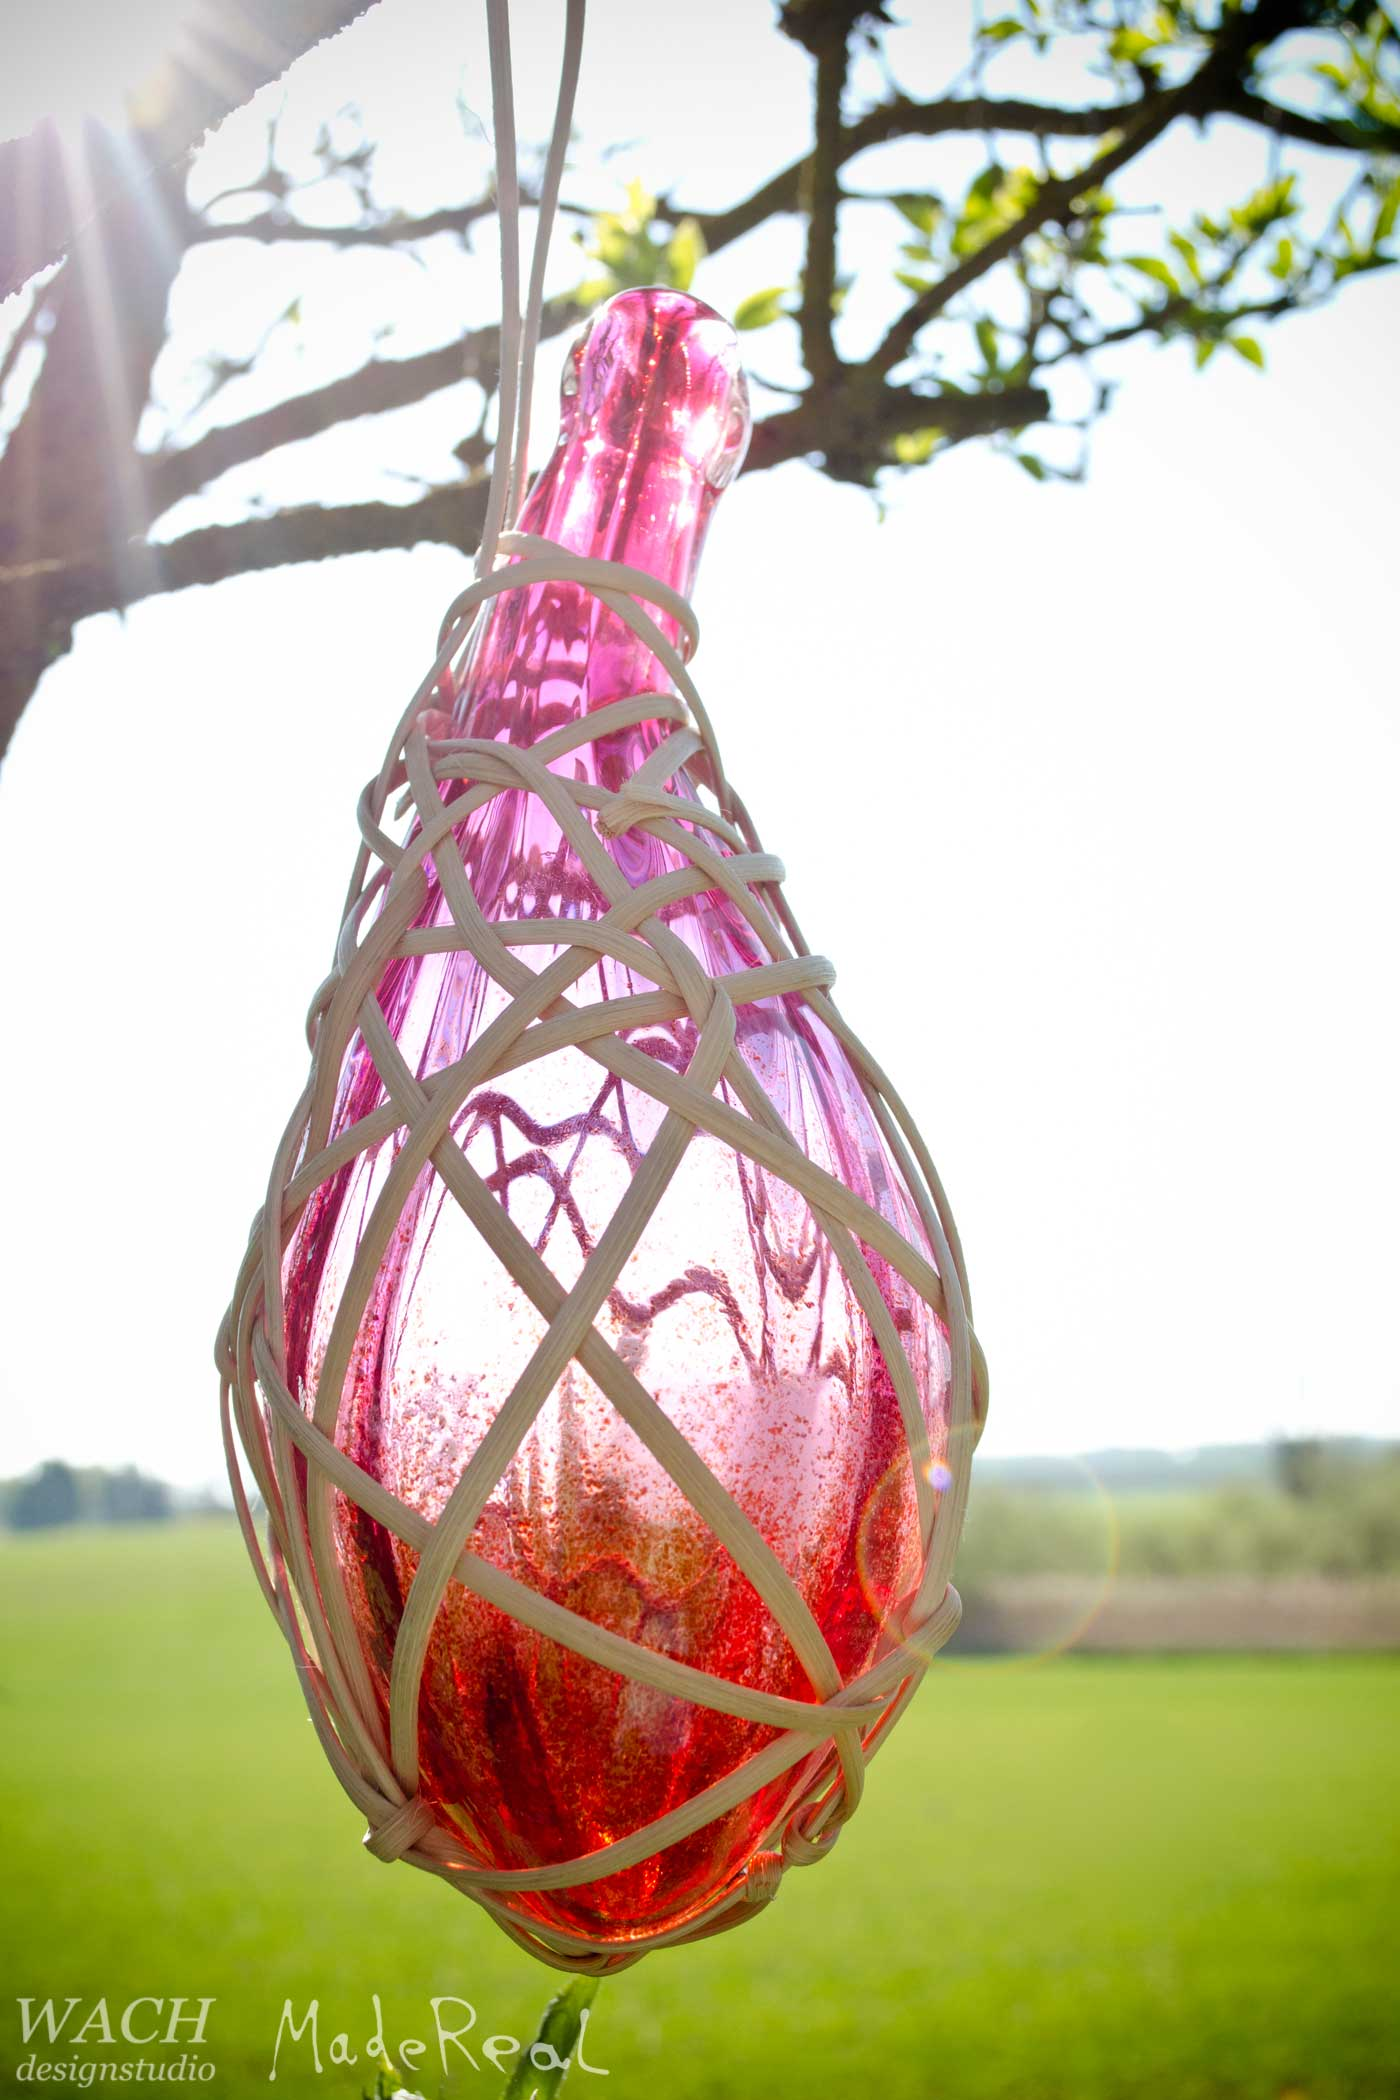 MadeReal Carafe crafted by Elna Jolom with additional weaving by Fred Jacob